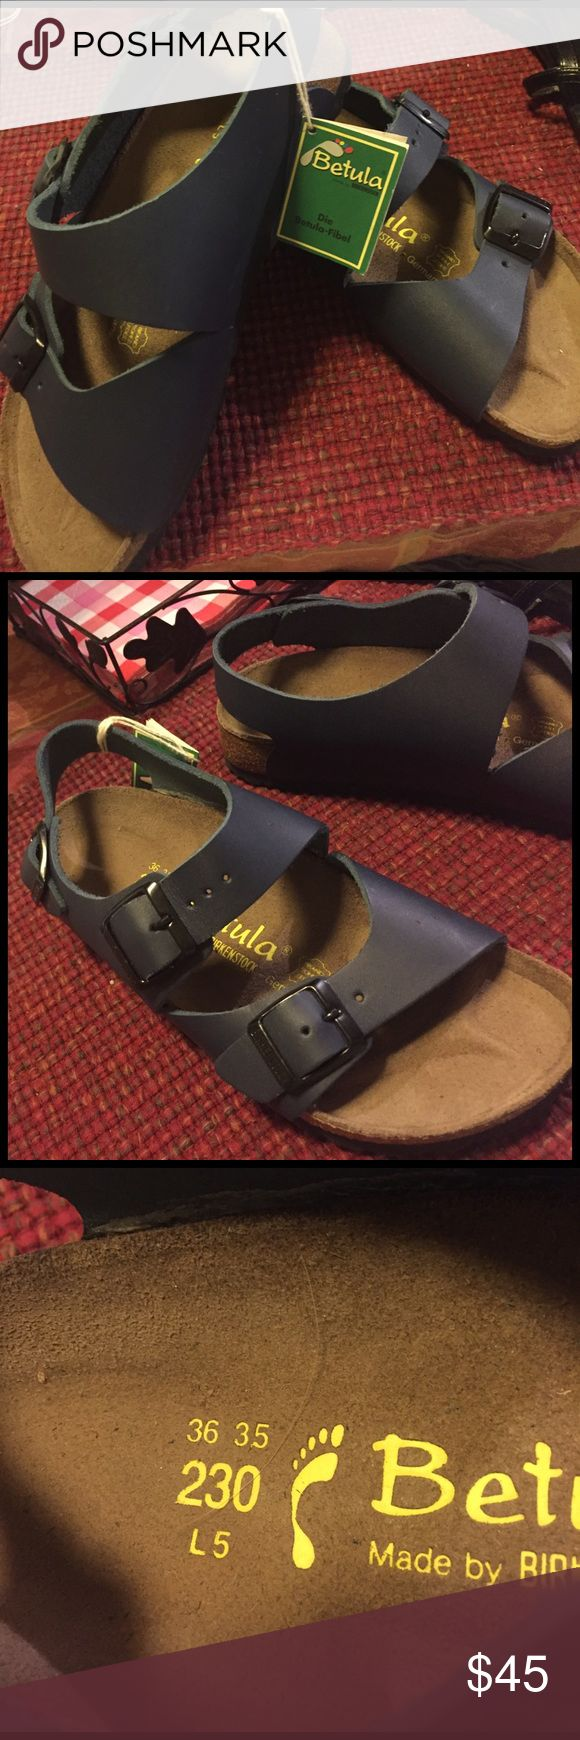 NWT Betula by Birkenstock size 36 35 L5 Brand-new pair of Betula  sandals. Made by Birkenstock. I'm posting a picture of the size so there is no questioning. They are dark blue. Birkenstock Shoes Sandals